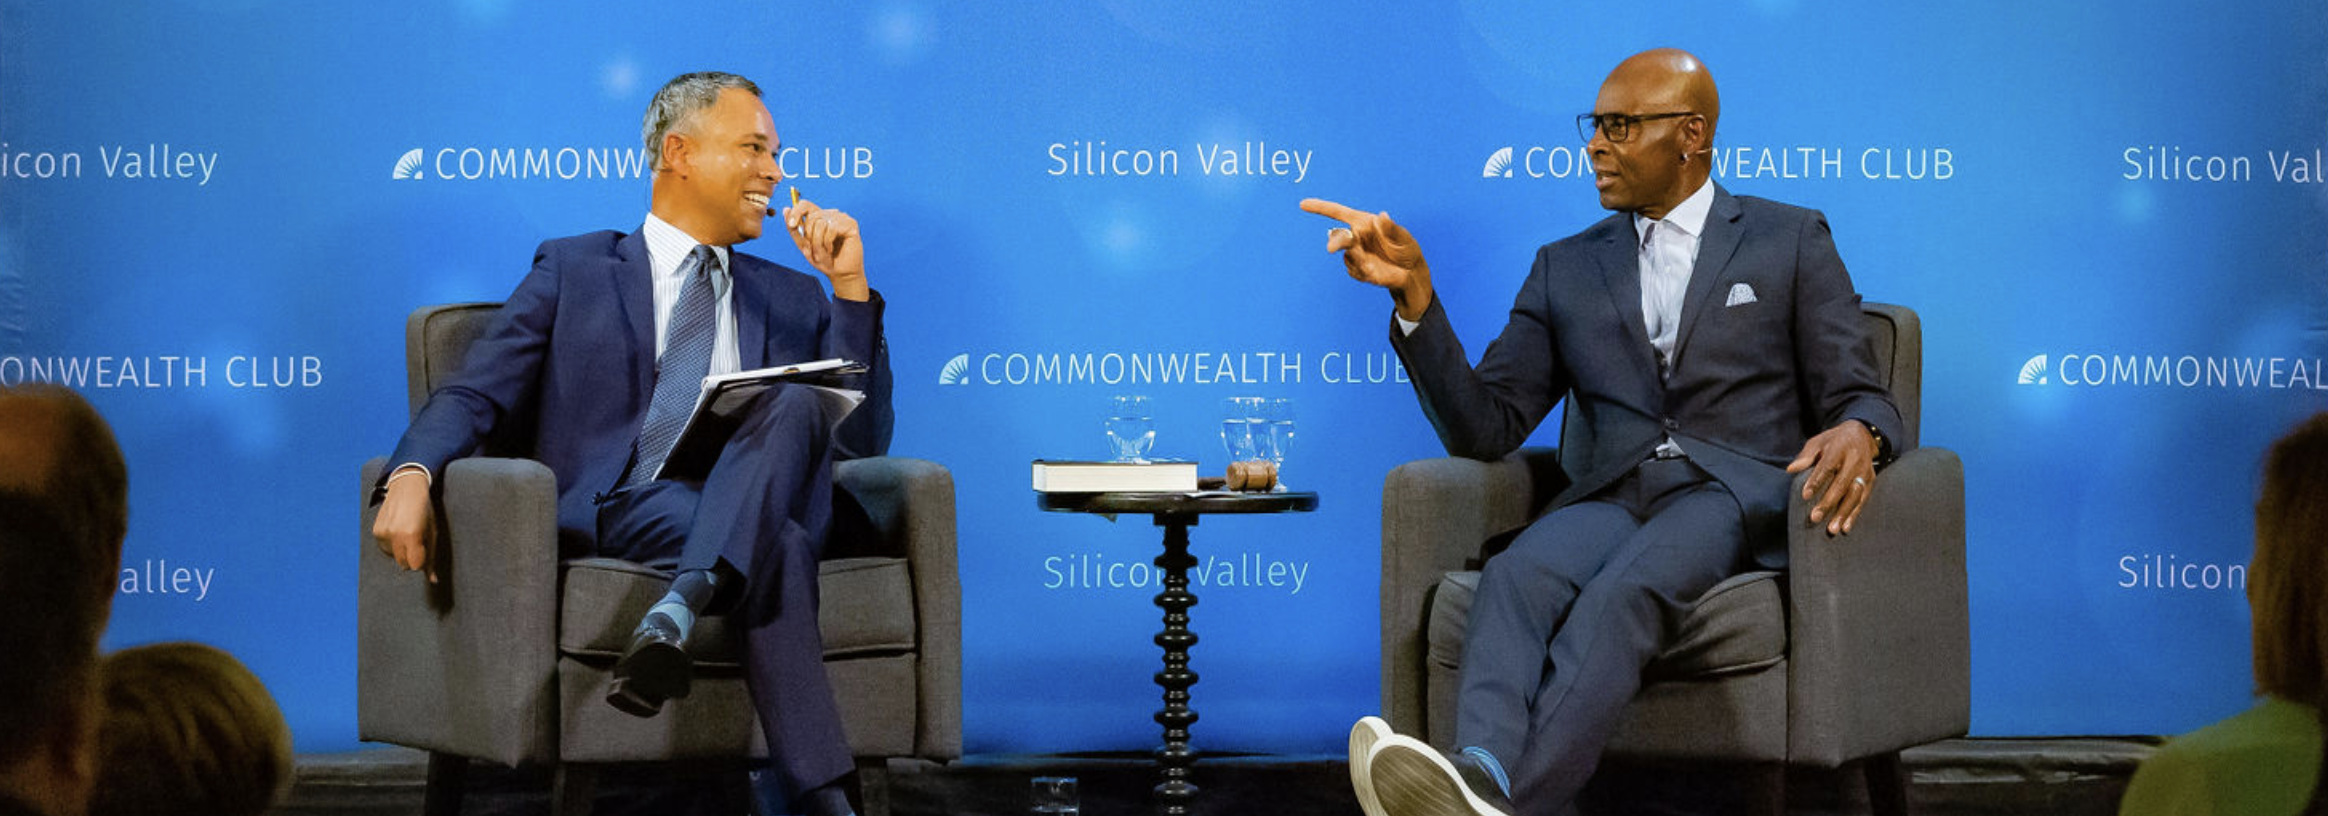 The Commonwealth Club Silicon Valley